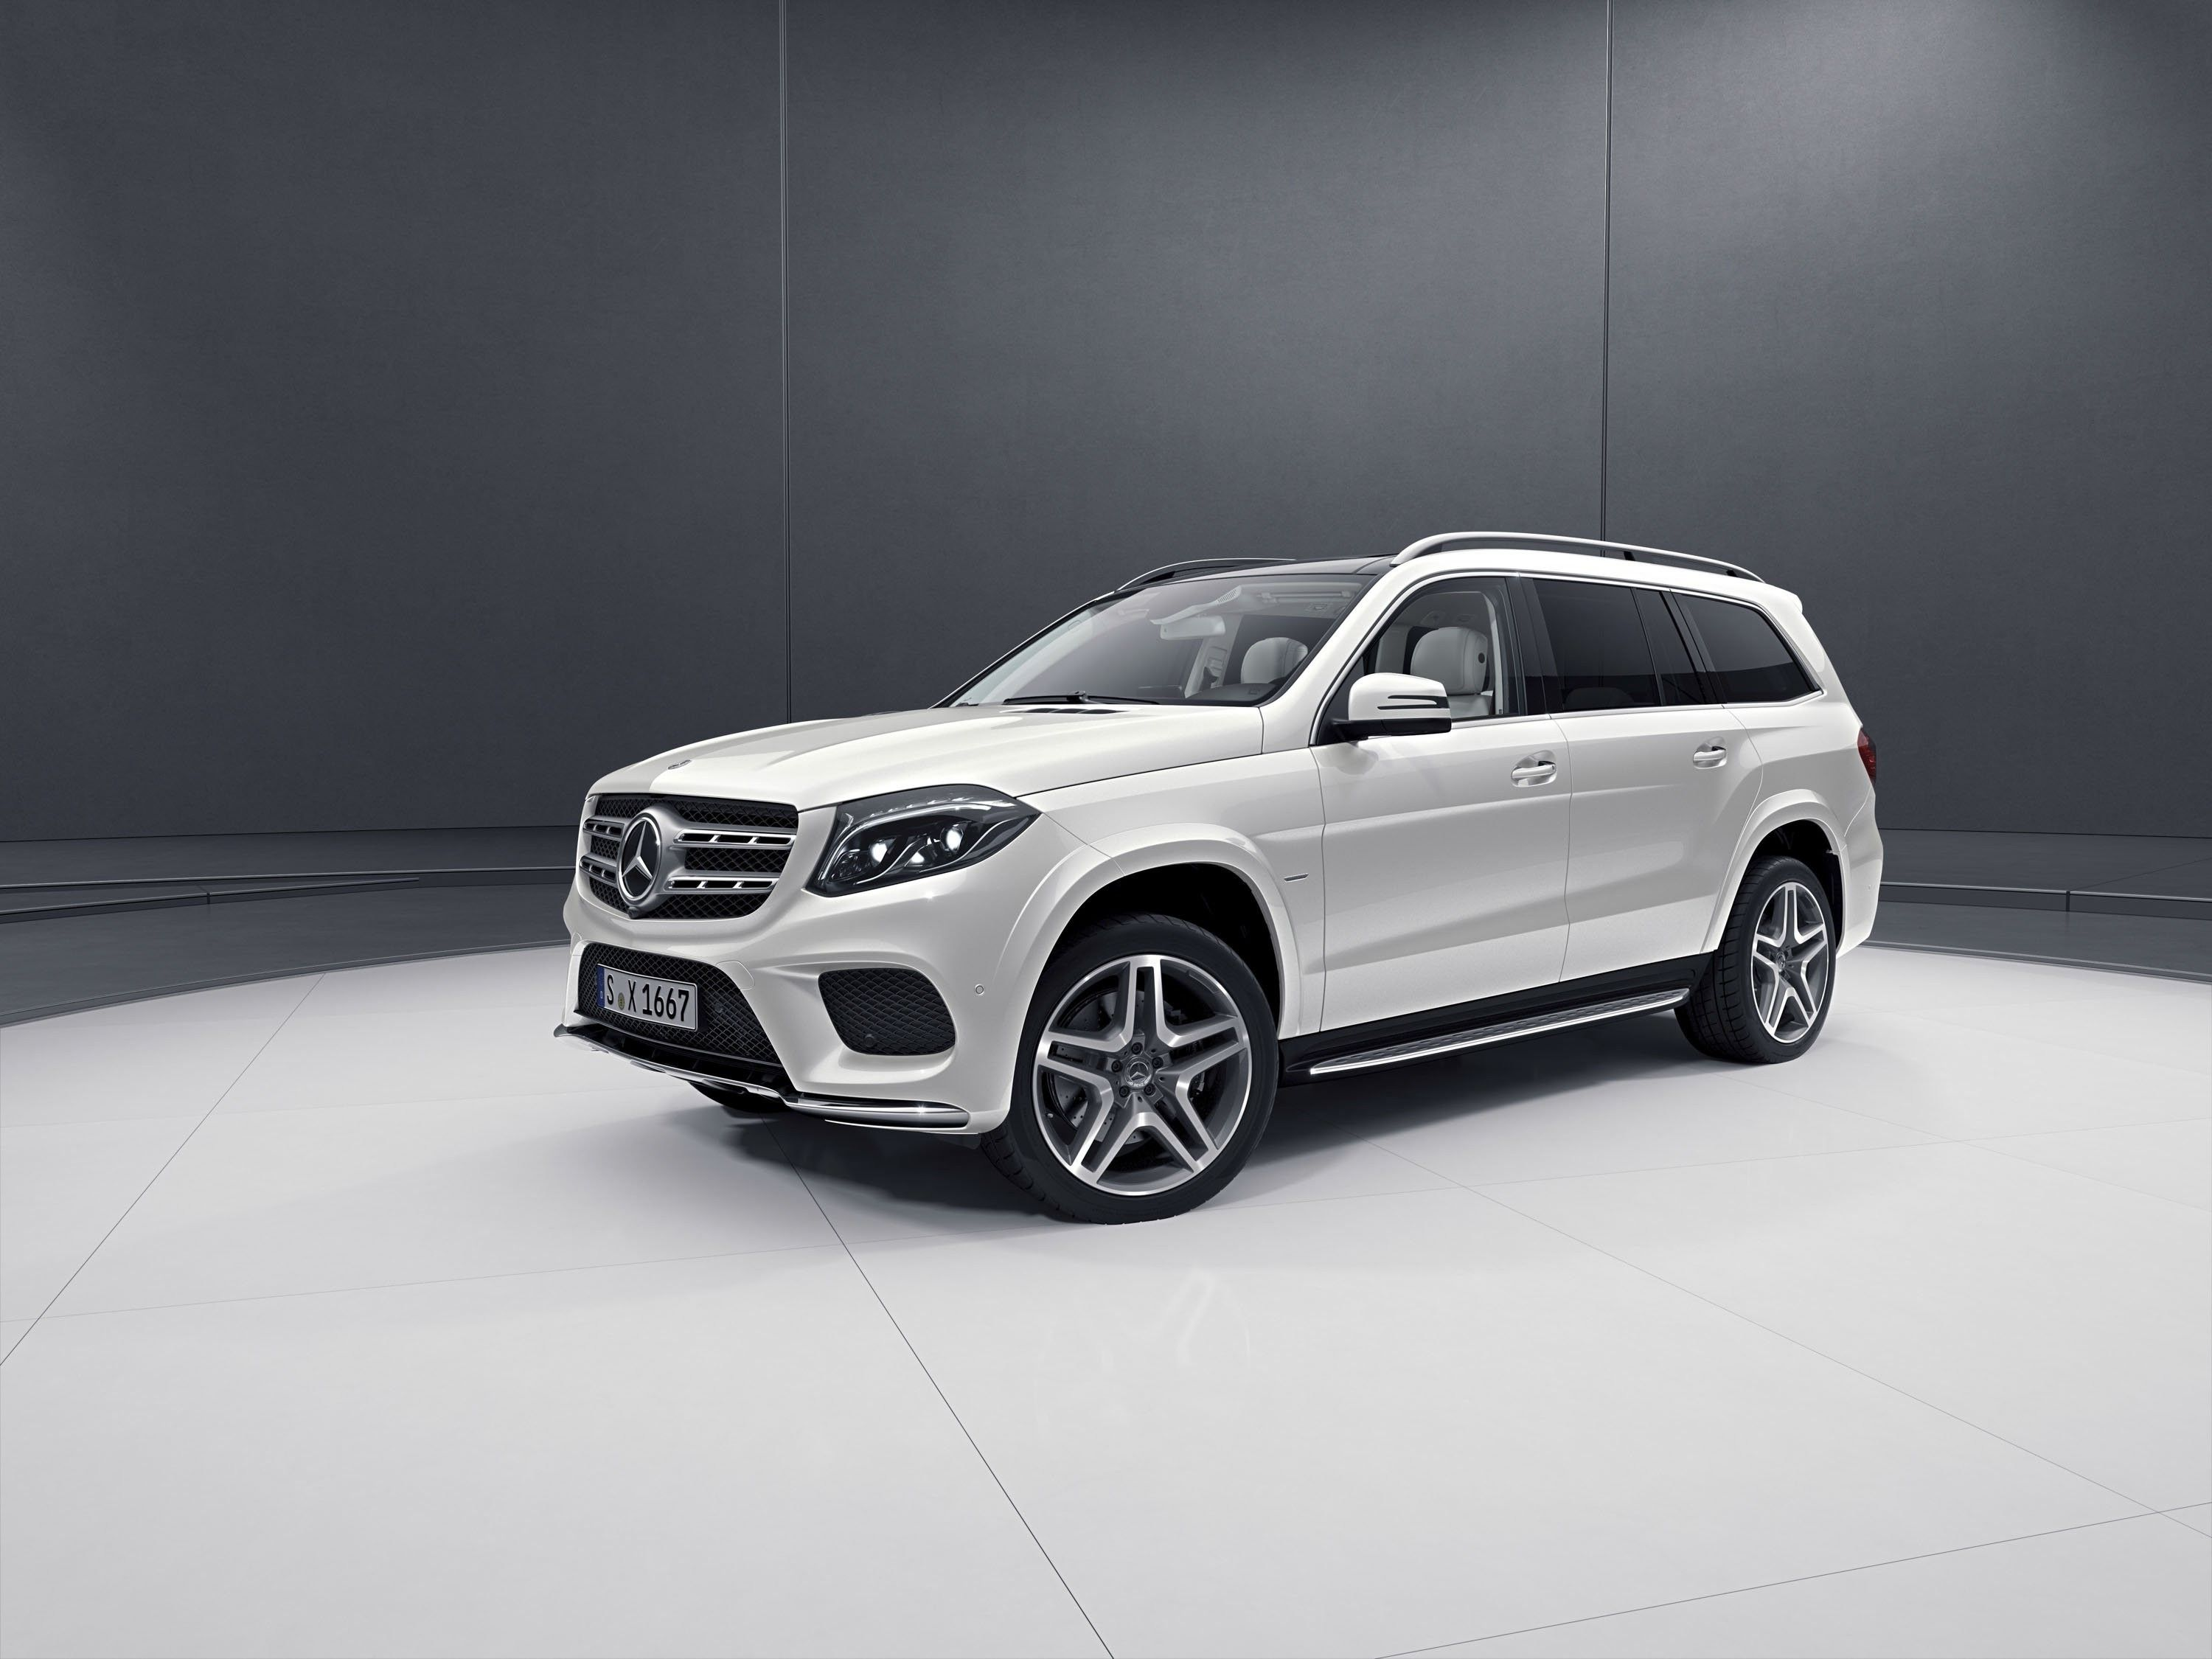 2018 Mercedes Benz Gls Class First Drive Price Performance And